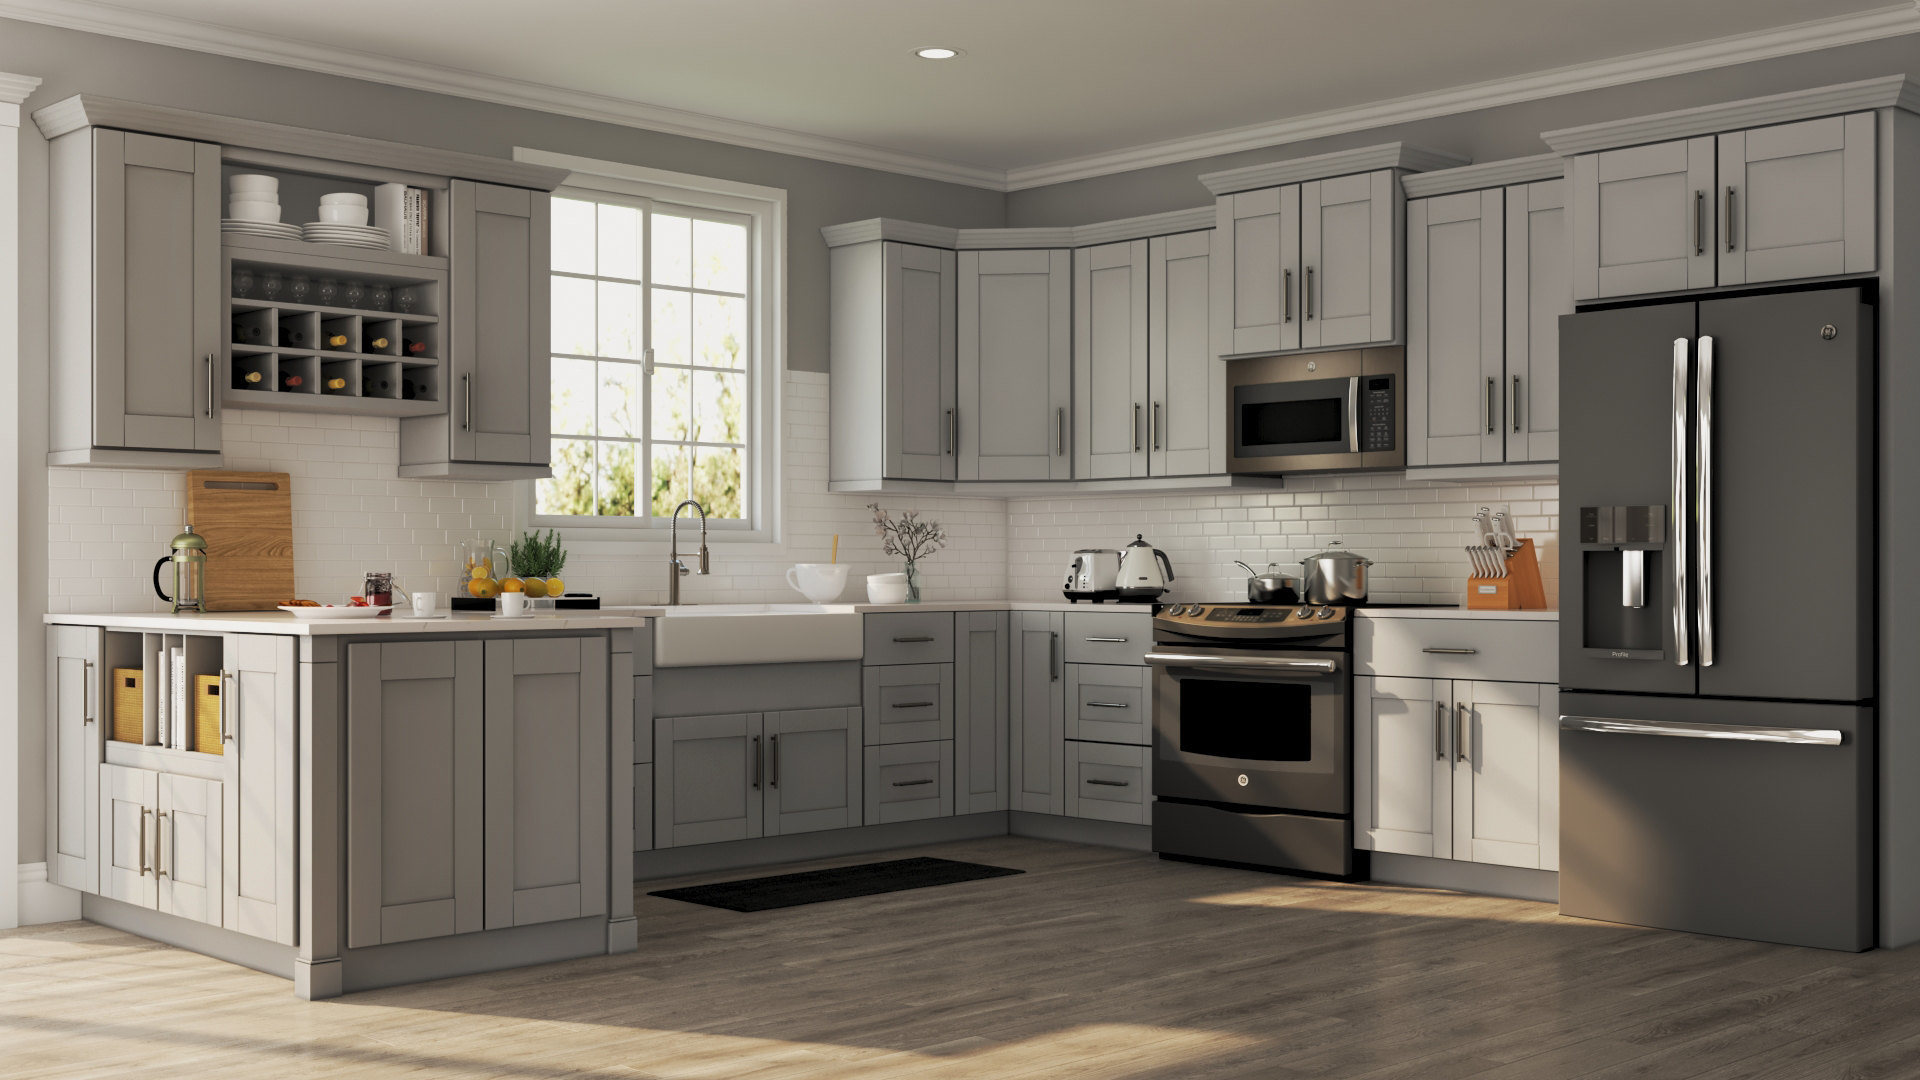 Shaker Gray Coordinating Cabinet Hardware Kitchen The Home Depot - Gray kitchen cabinet hardware